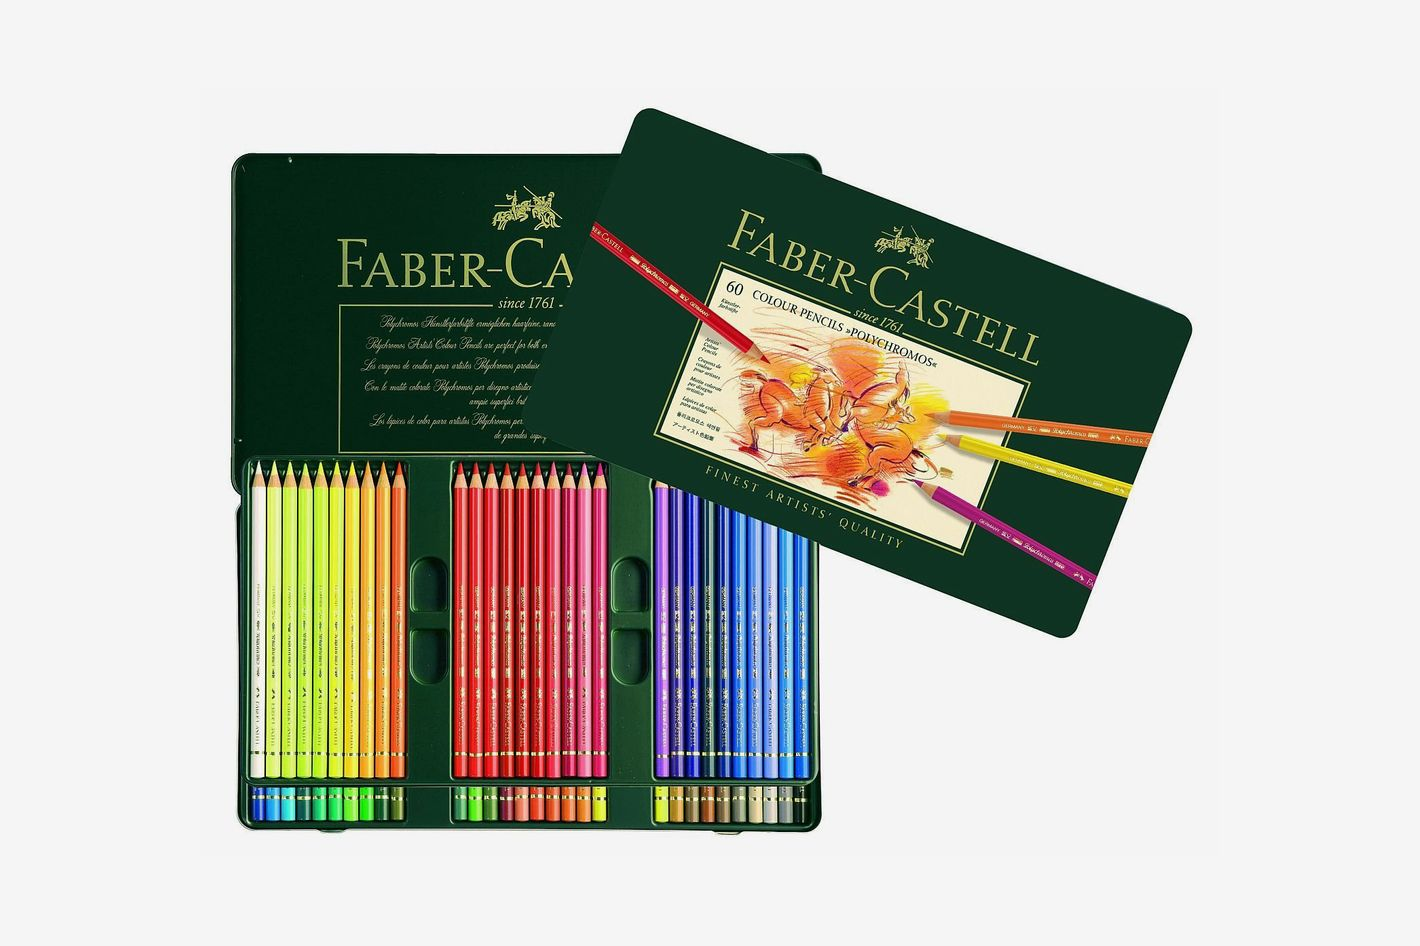 Faber-Castell Polychromos Colored Pencil Set in Metal Tin, 60 Pieces